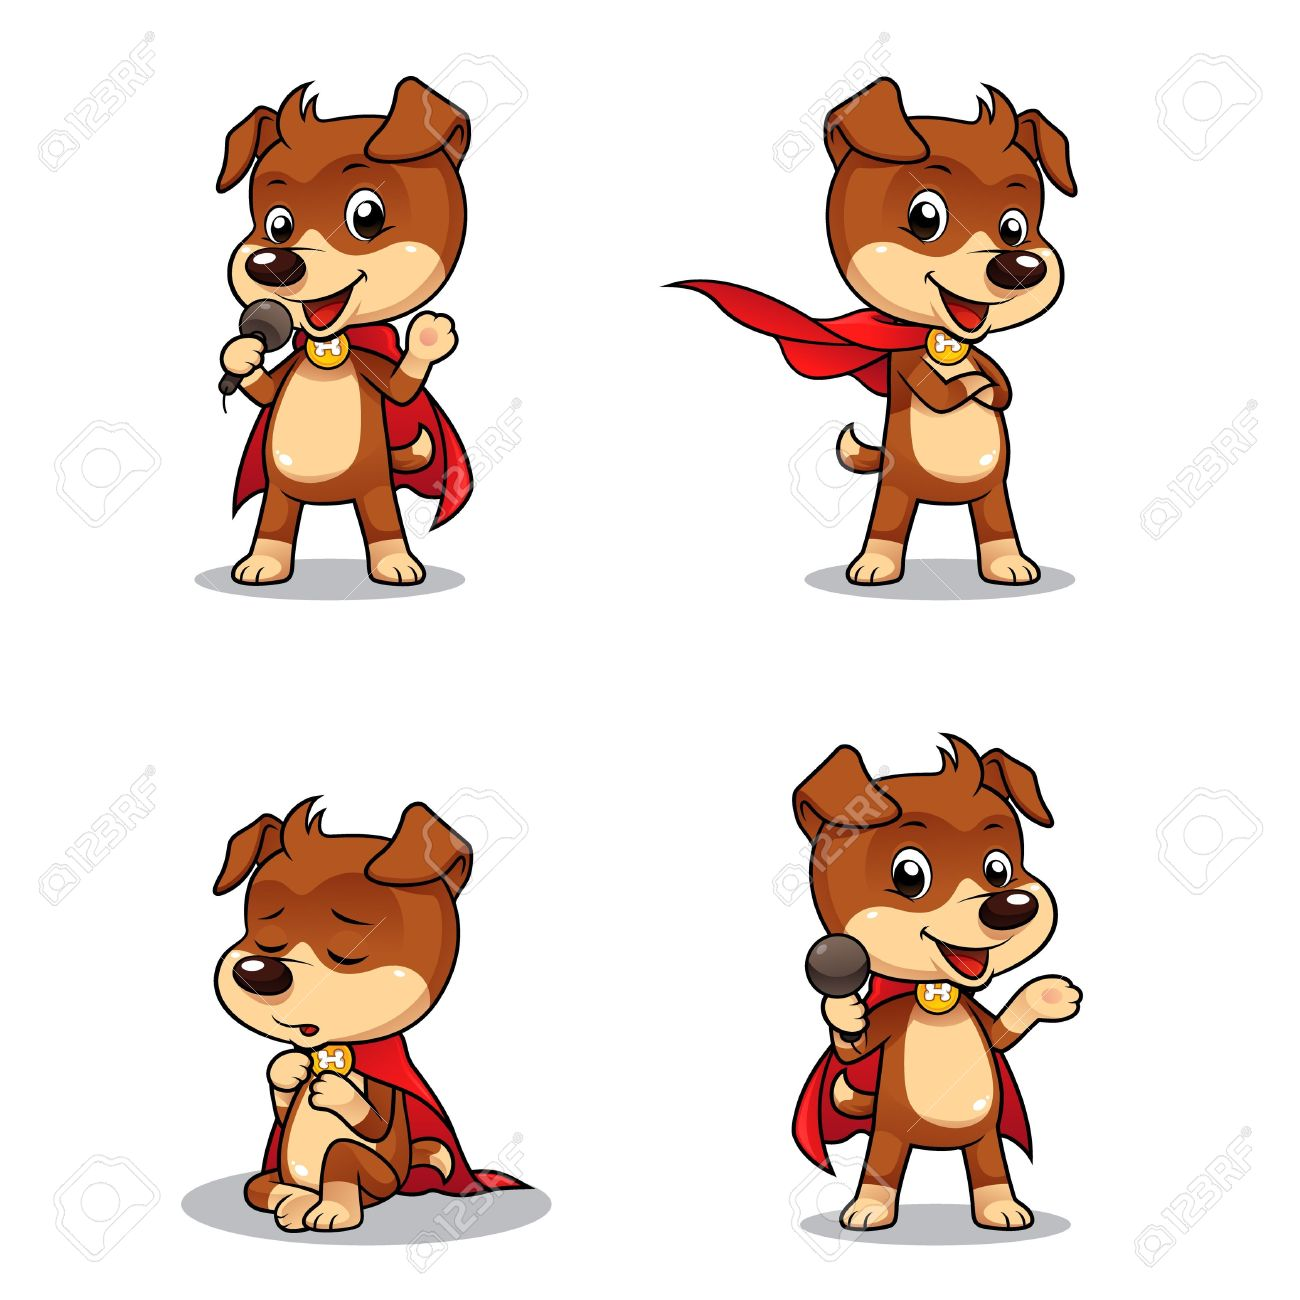 Superhero Puppy Dog 01  4 different poses of superhero puppy dog Stock Vector - 19257679